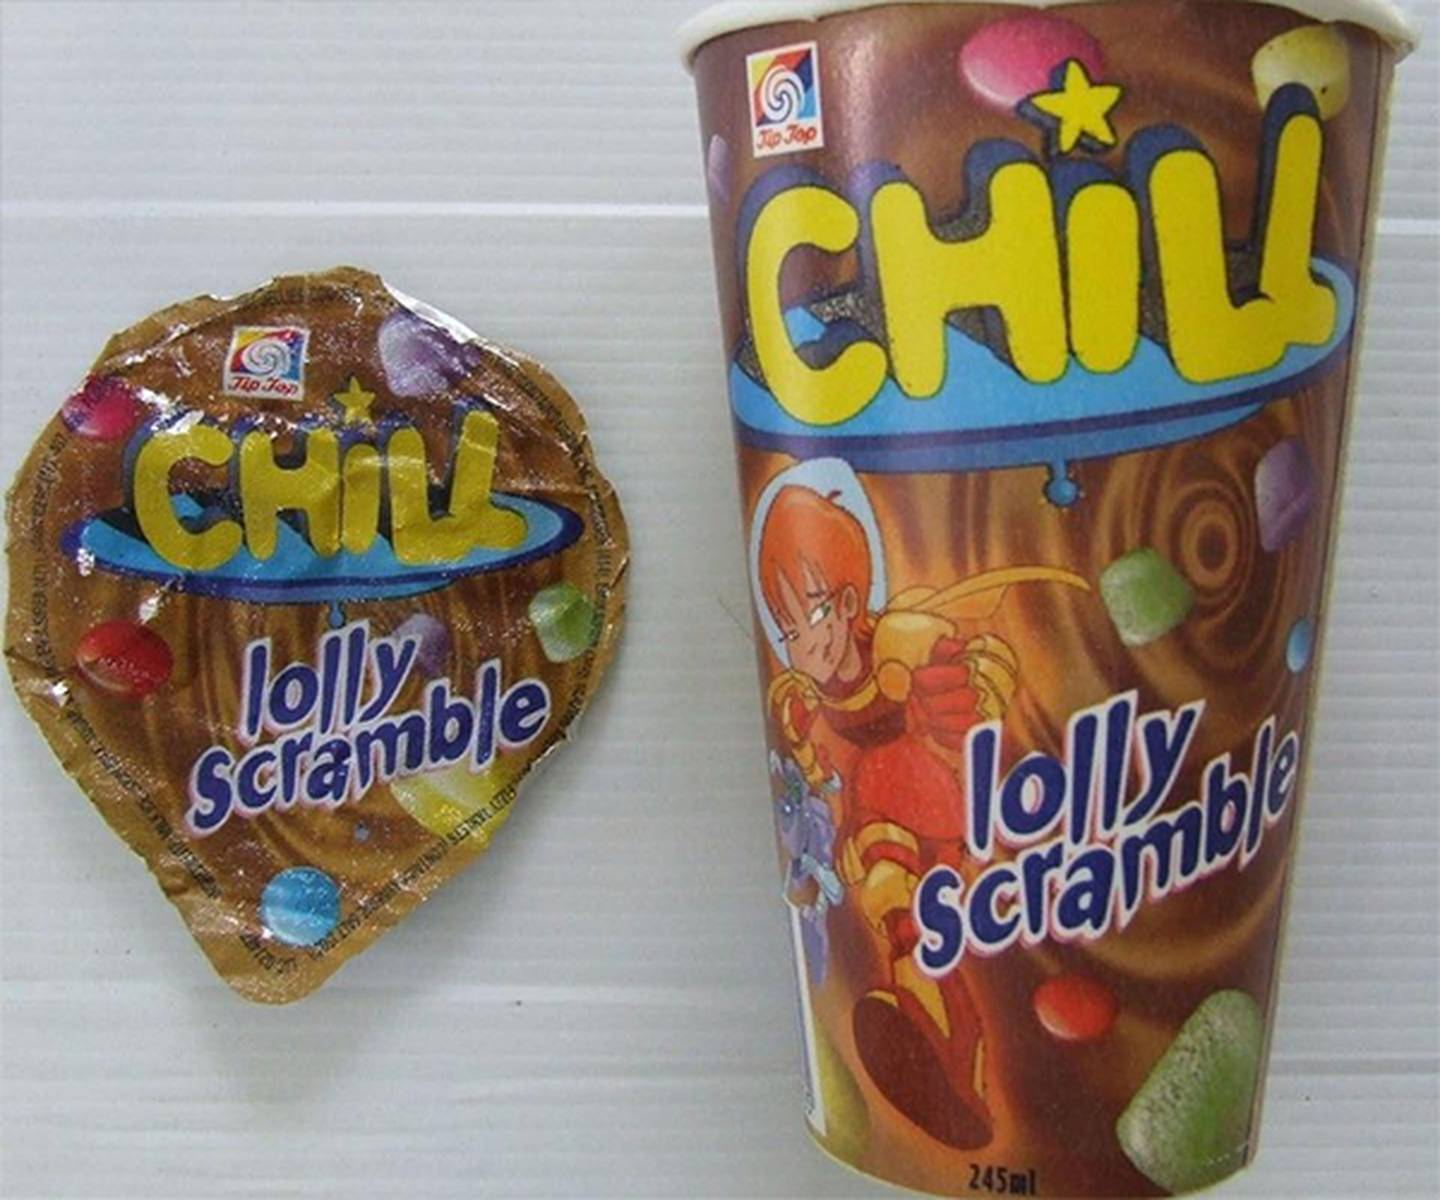 Who remembers this icecream with the delicious lolly scramble inside?